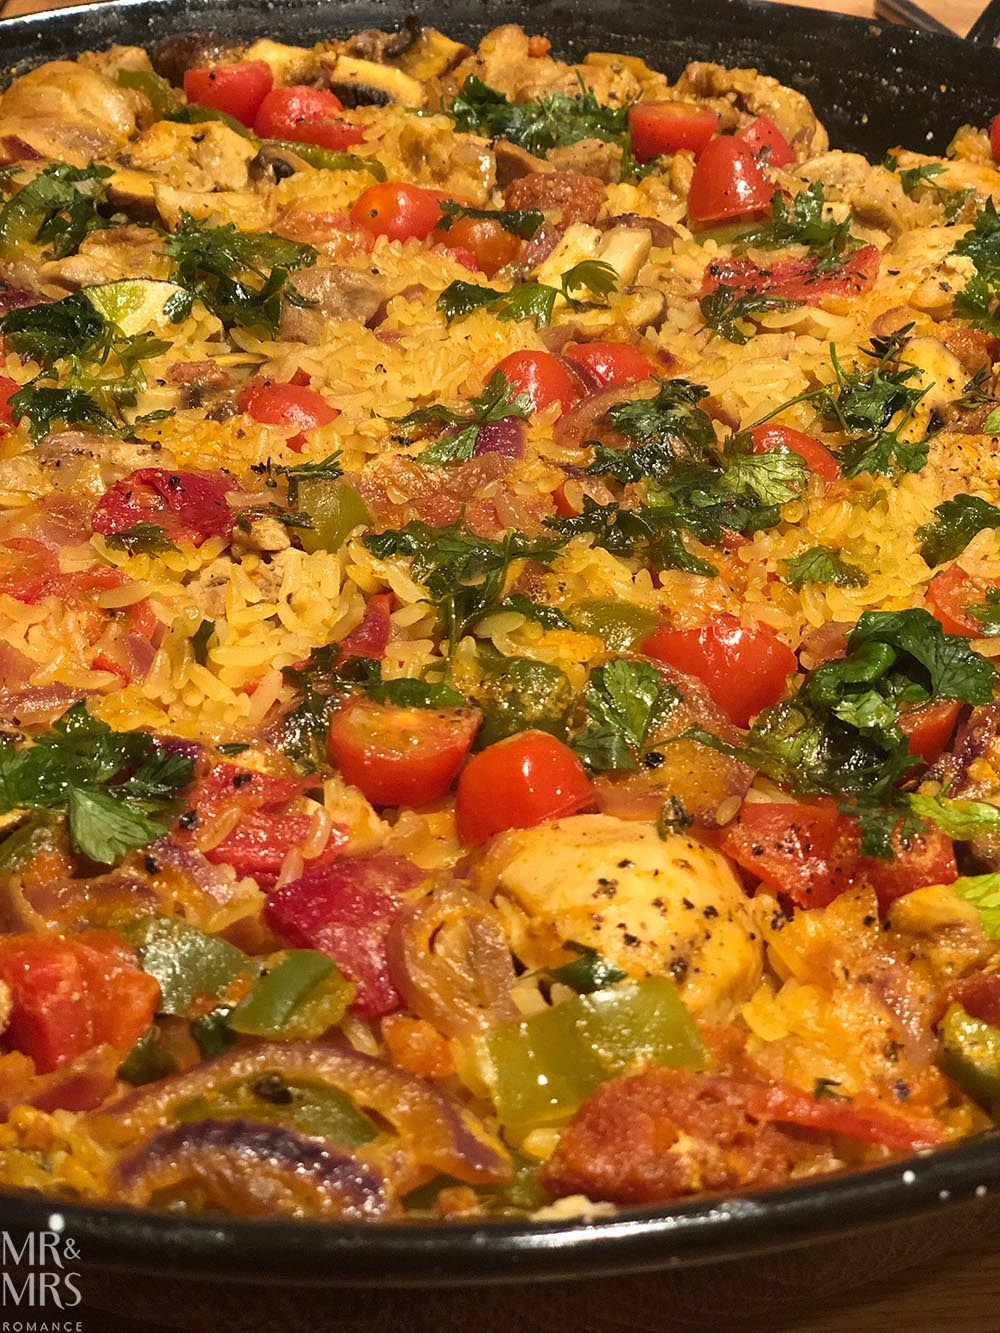 Welcome back to England Weekly Edition - Dave's Paella tight